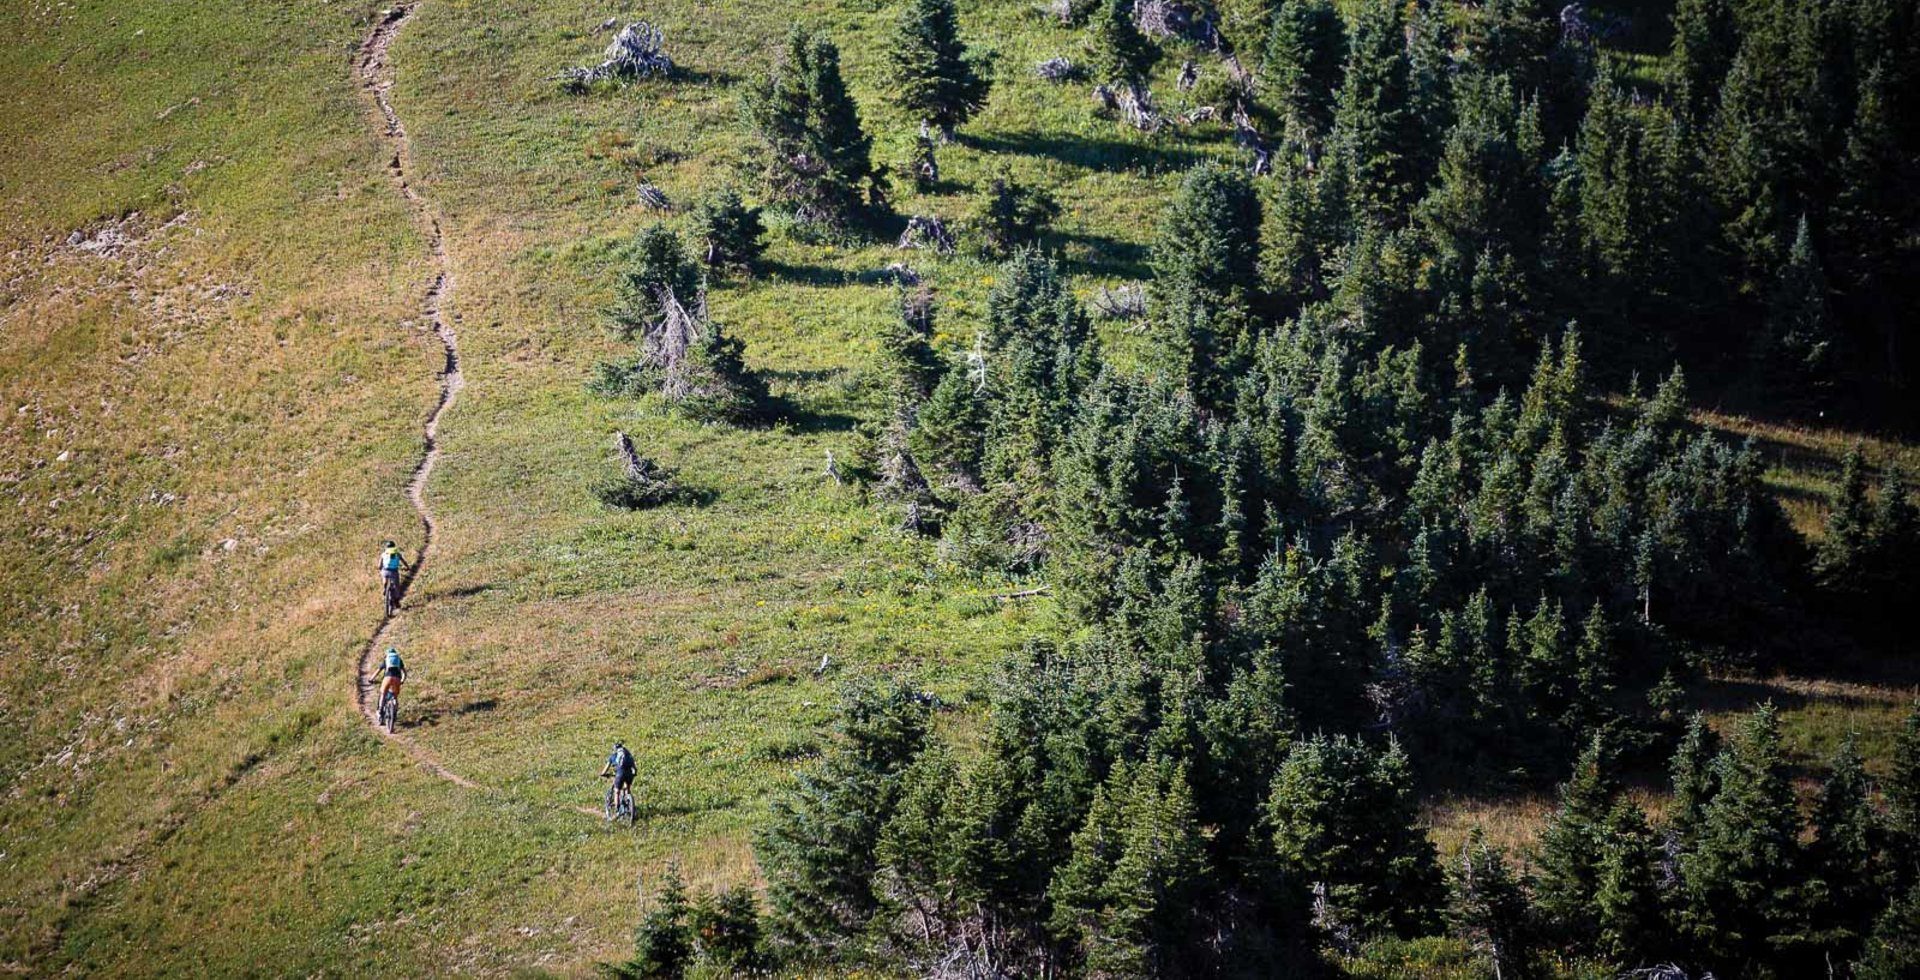 The fall colors may be easy on the eyes, but at nearly 12,000 feet, the altitude is brutal on the lungs. The group coasts along the Indian Ridge section of the Colorado Trail, stocking up on breath for the numerous 12,000-foot punchy climbs ahead.